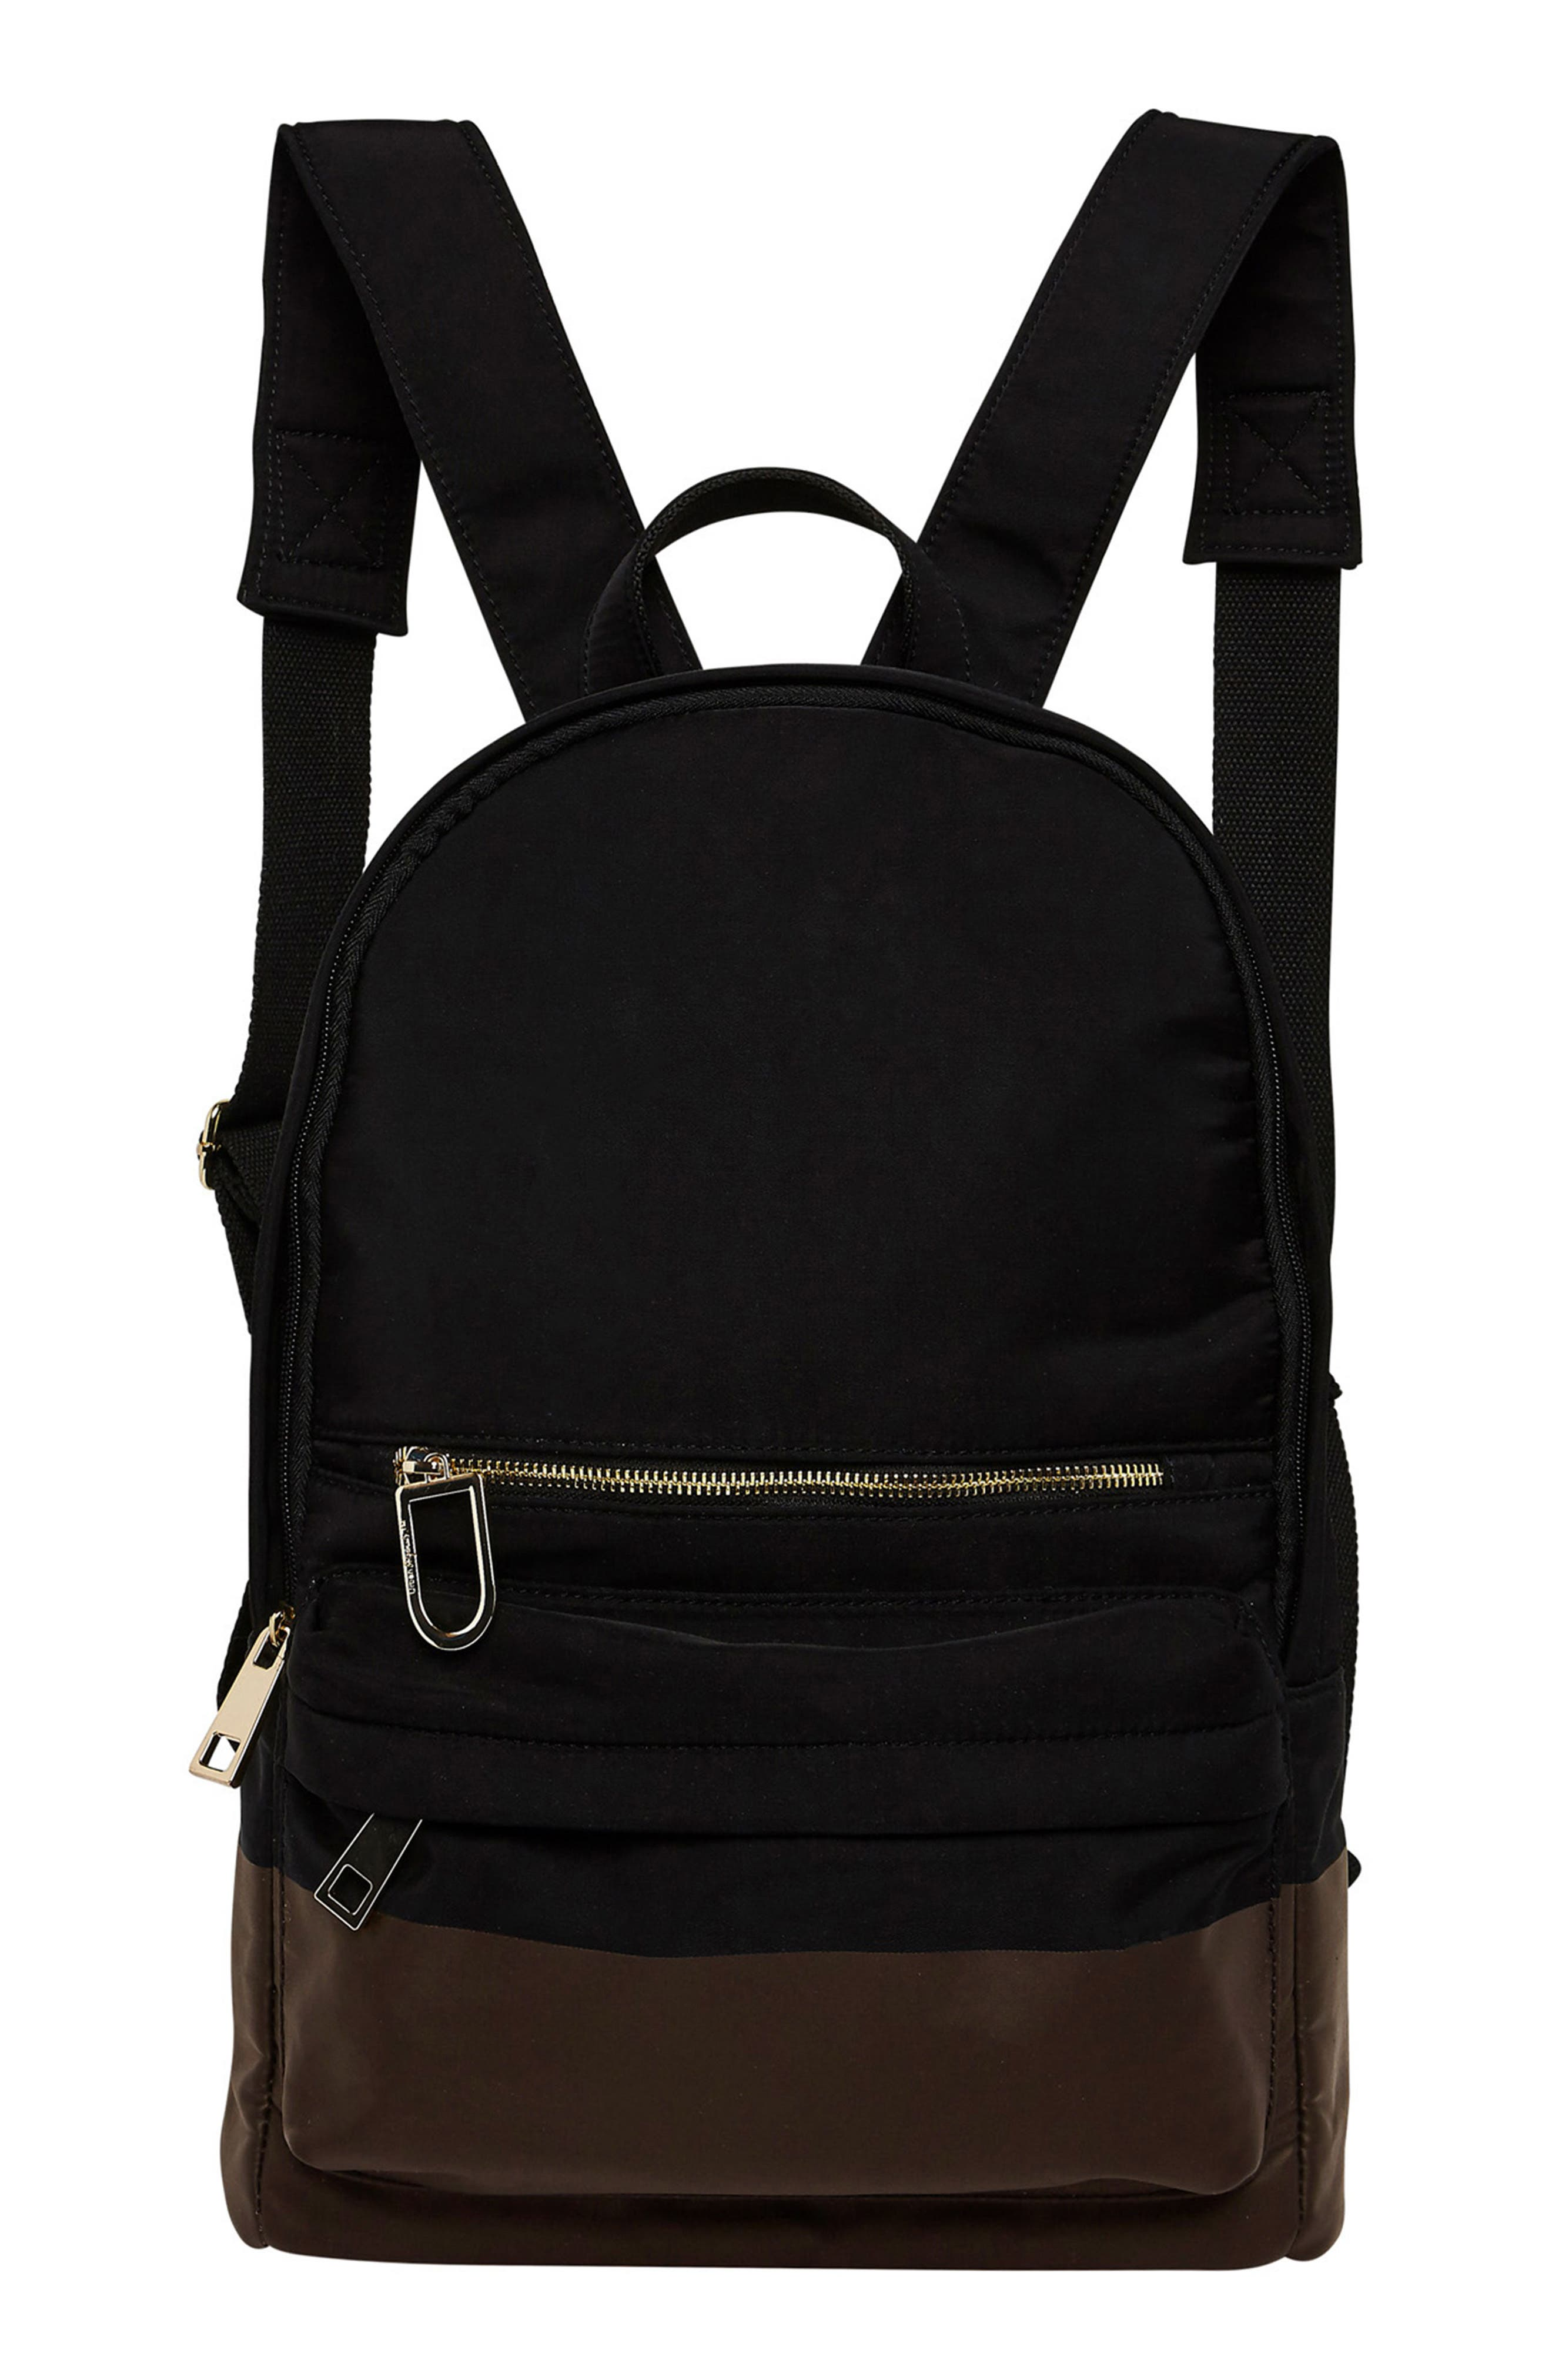 Own Beat Vegan Leather Backpack,                         Main,                         color, Black